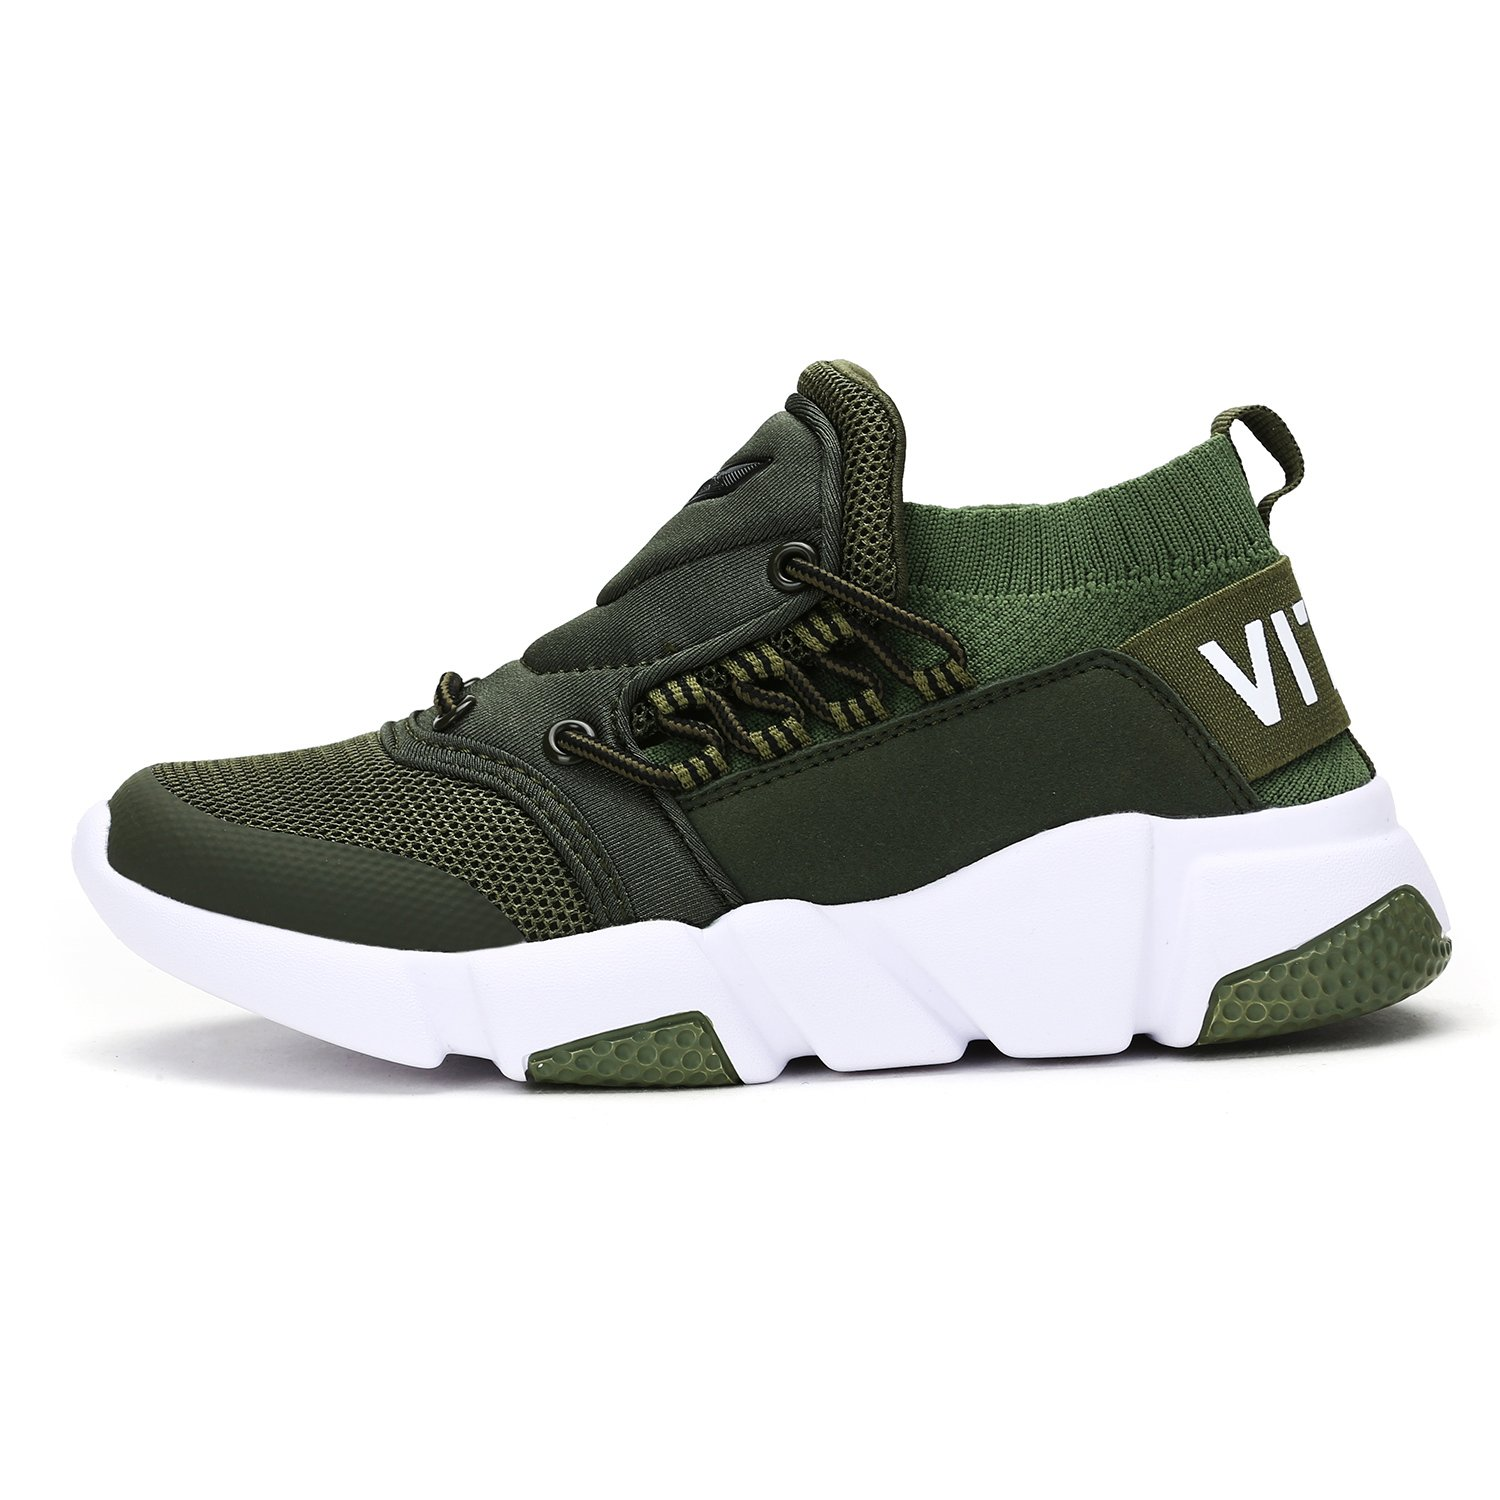 Little Kid//Big Kid AShion Kids Casual Shoes Outdoor Athletic Running Walking Shoes Lightweight Fashion Breathable Sneakers